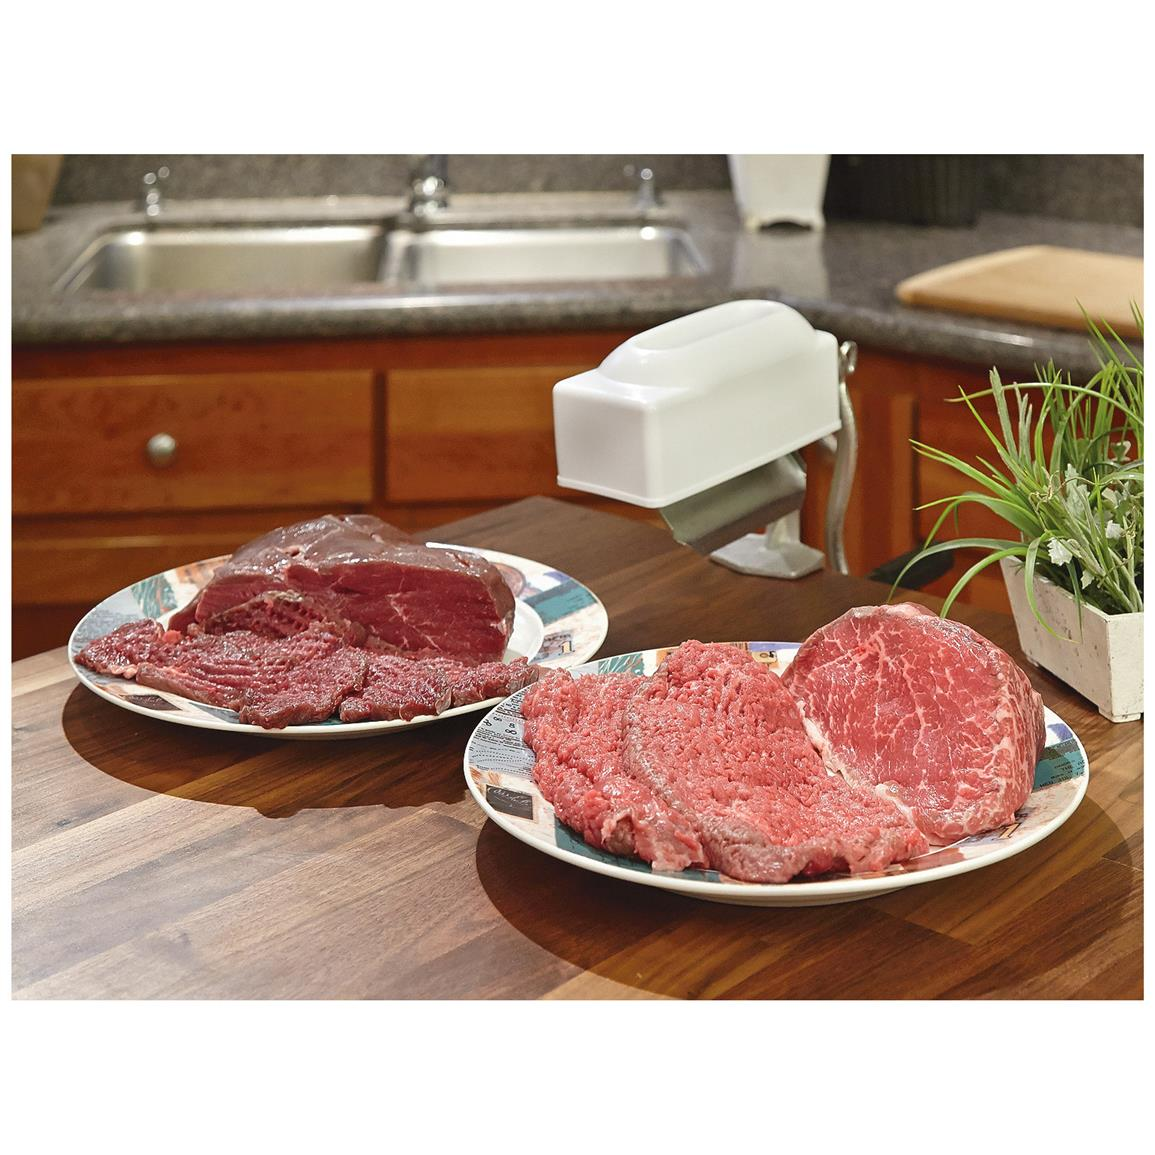 With this unit you can make those bargain-bin steaks melt-in-your-mouth tender